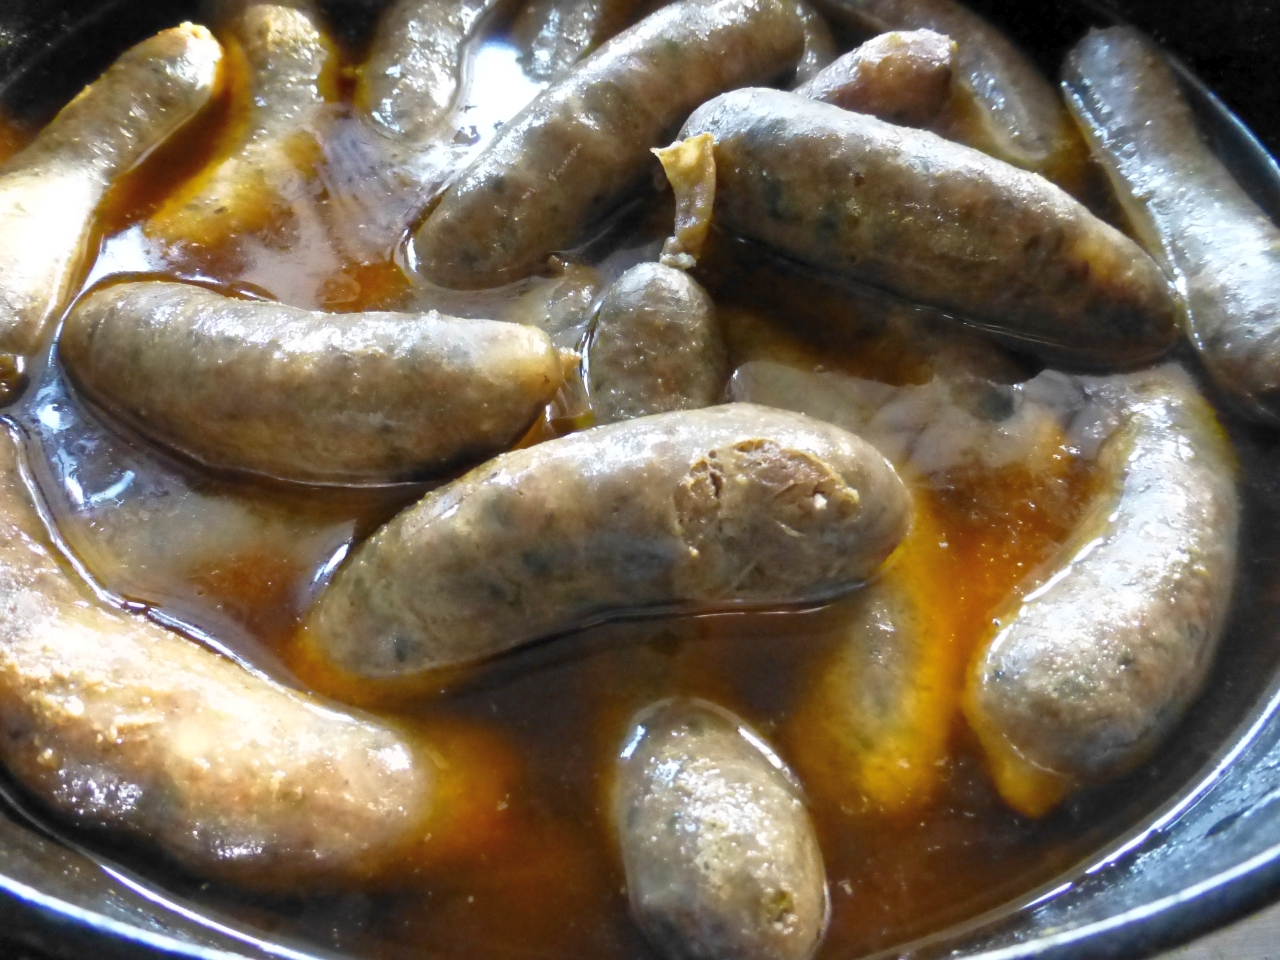 Does Sausage Have Nitrates Like Hot Dogs